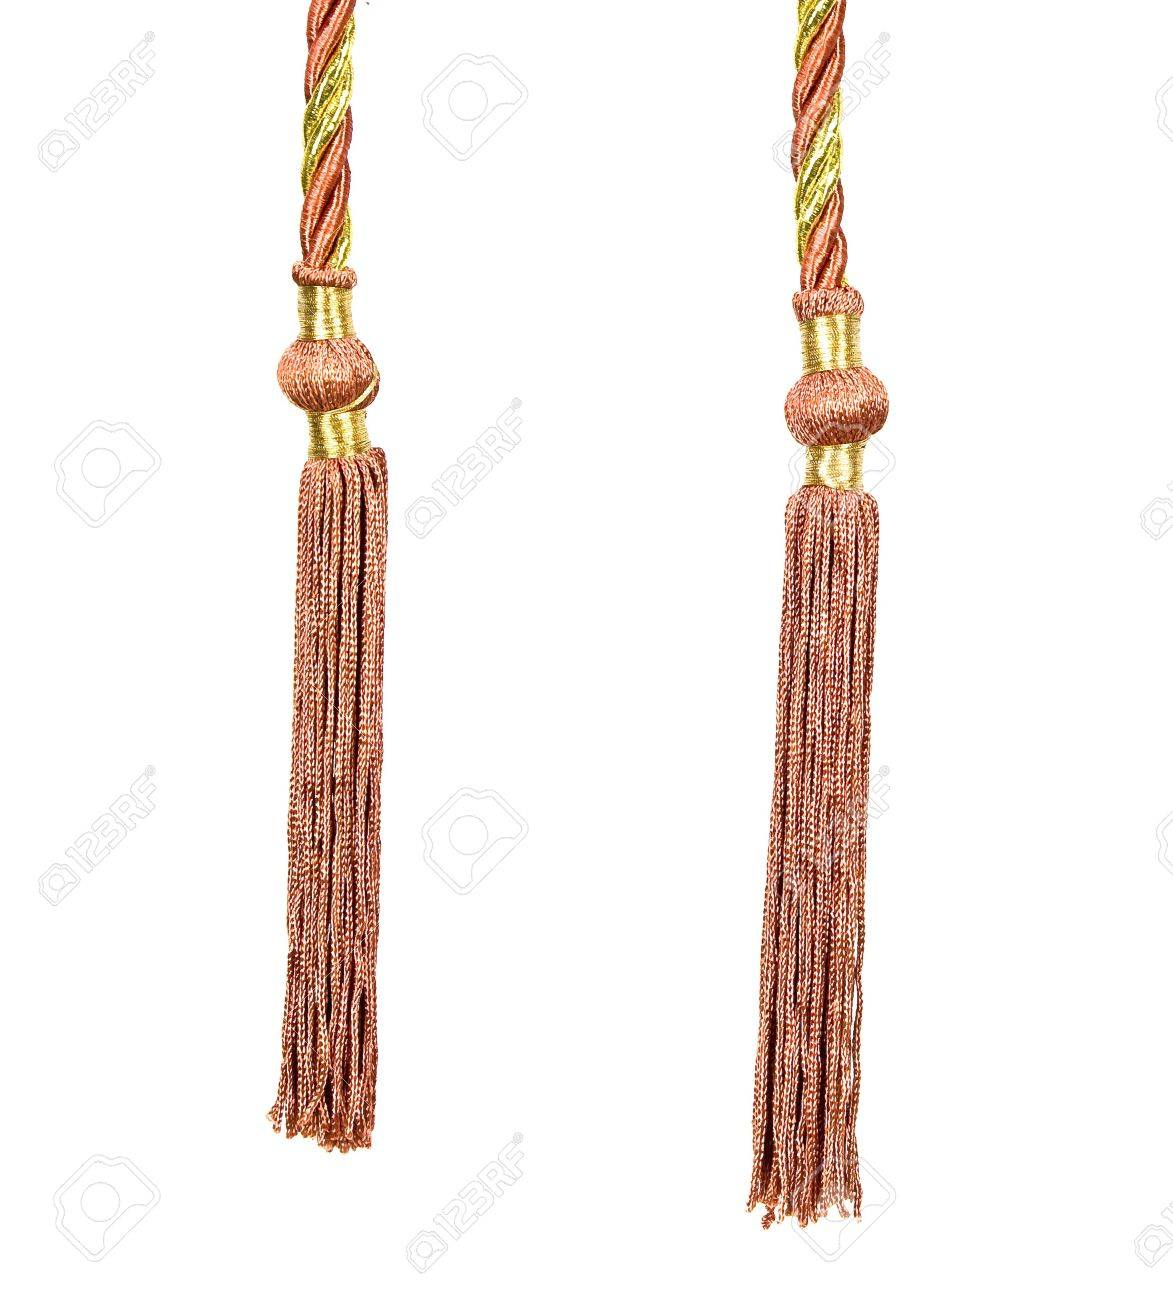 Rope Curtain Two Tassels And Rope For Curtain Isolated On White Background With